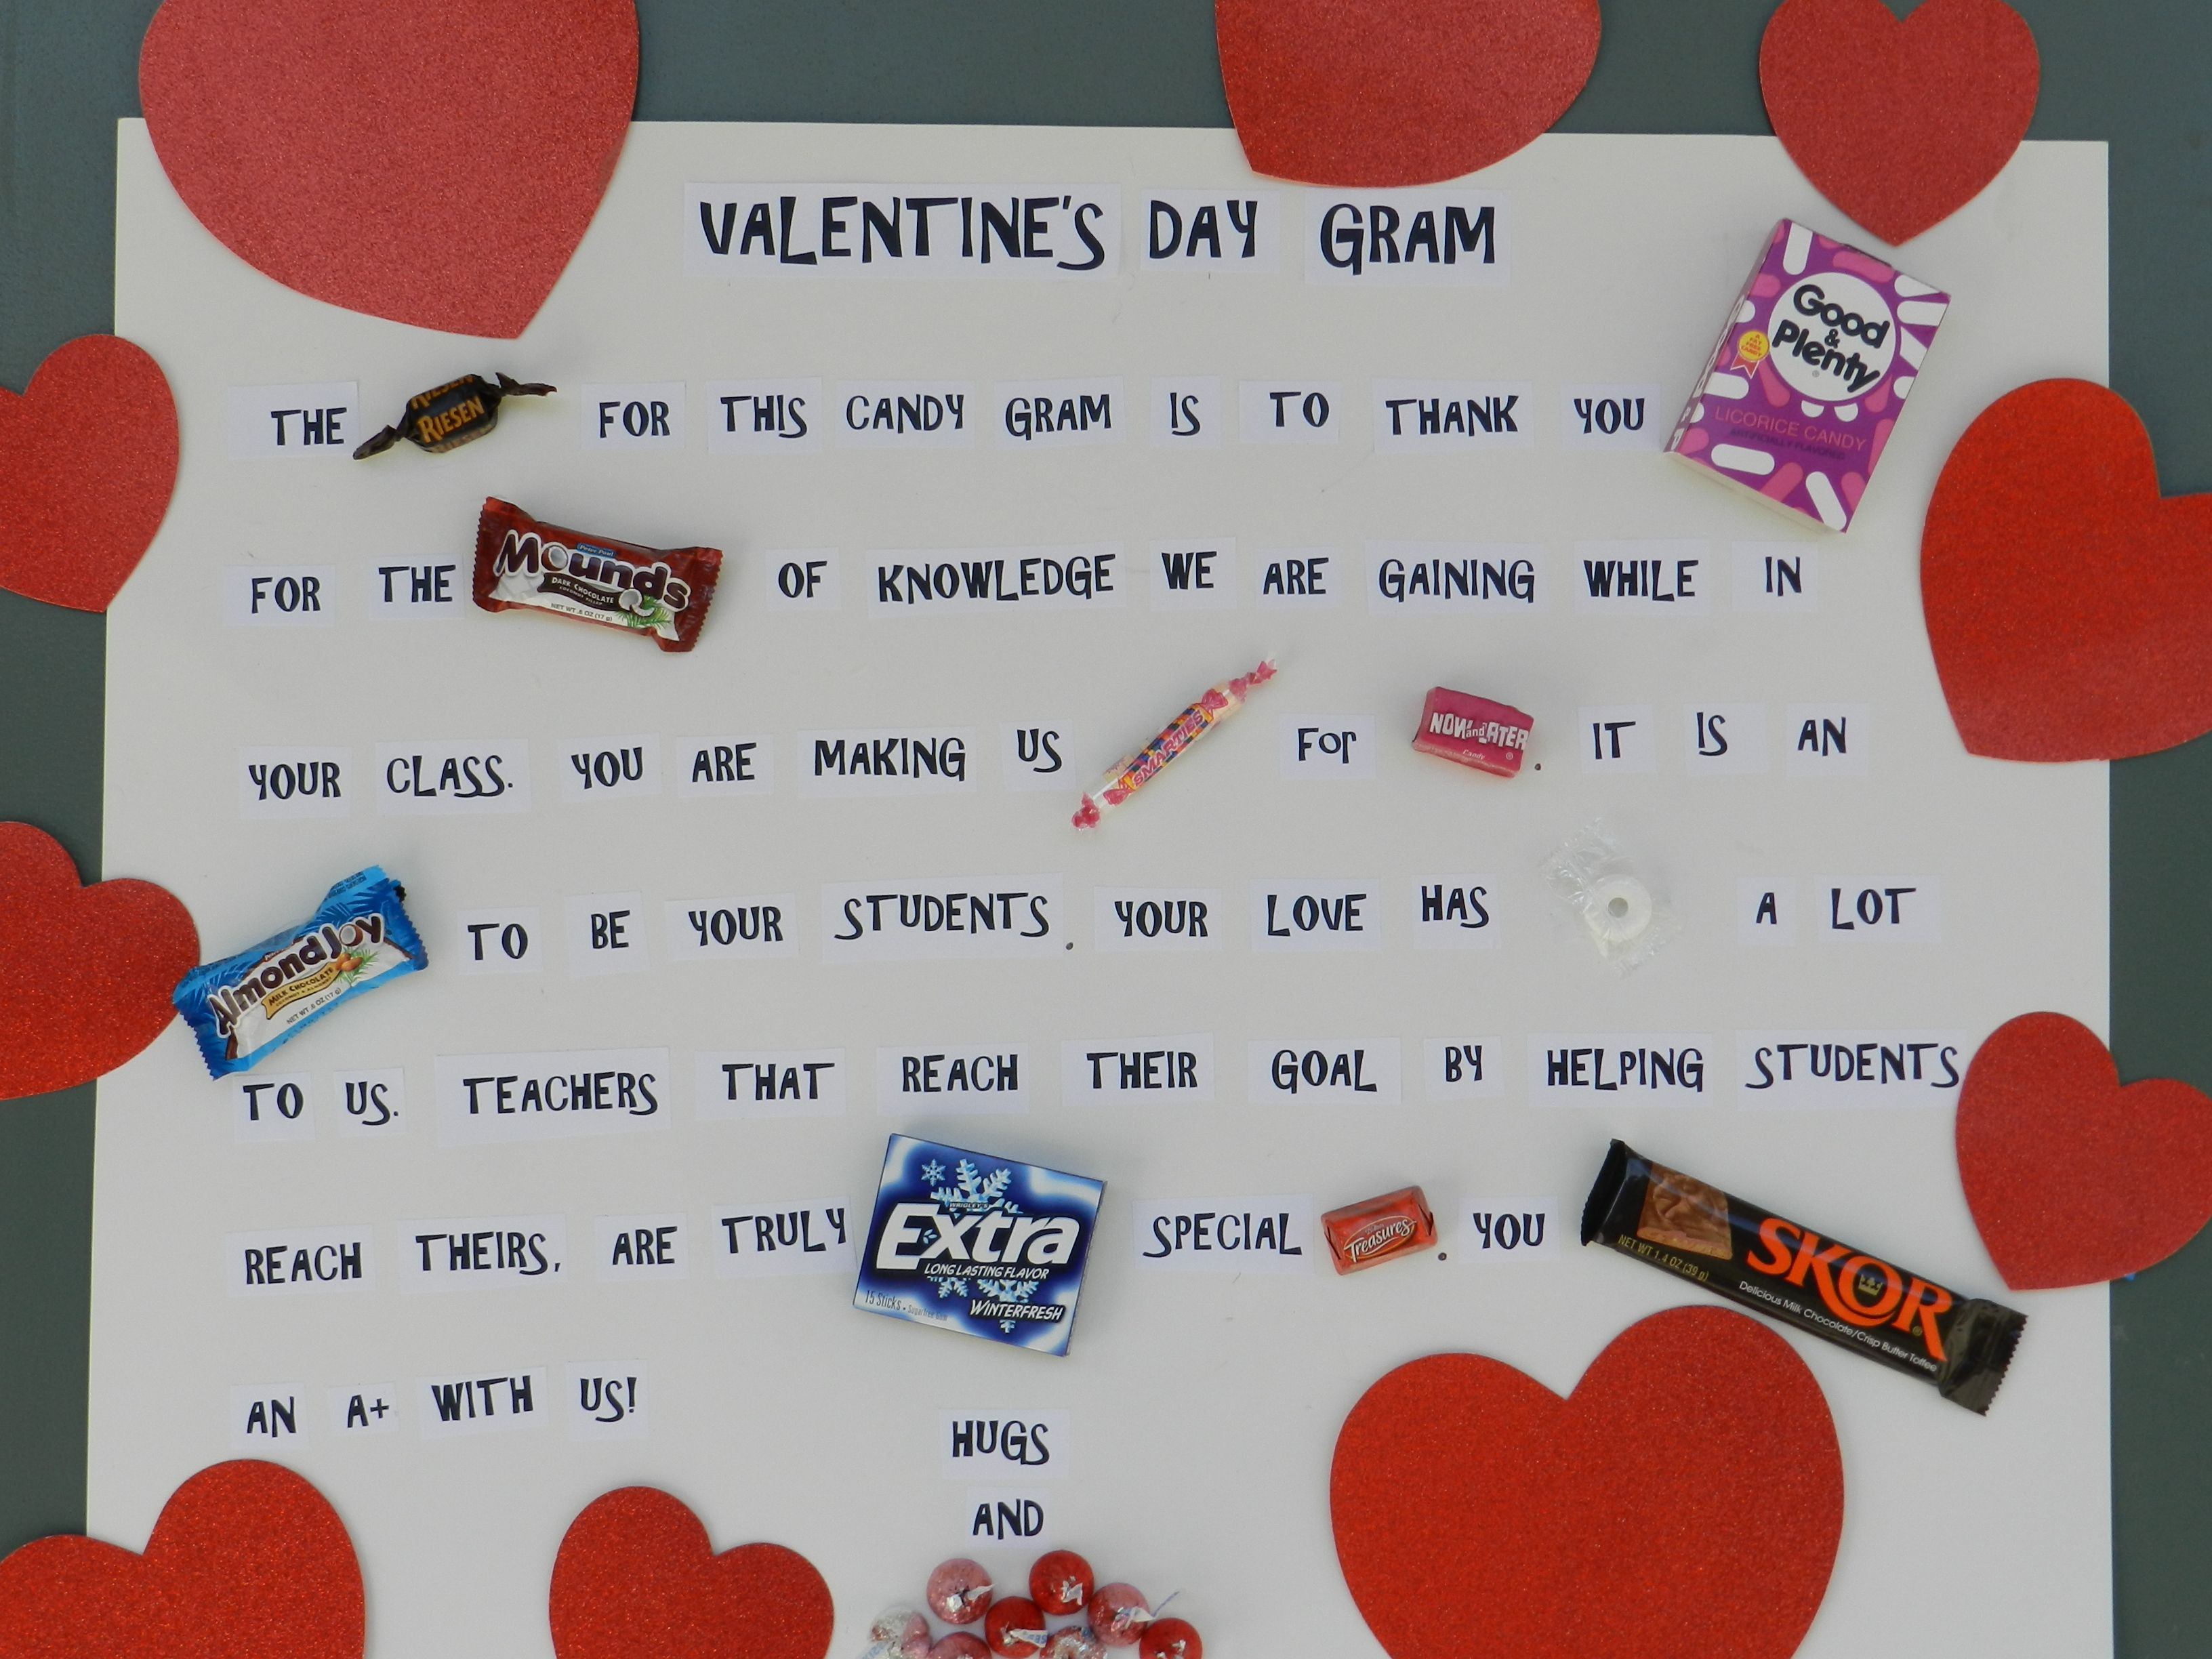 Cute poem to put on a teachers door for valentines day